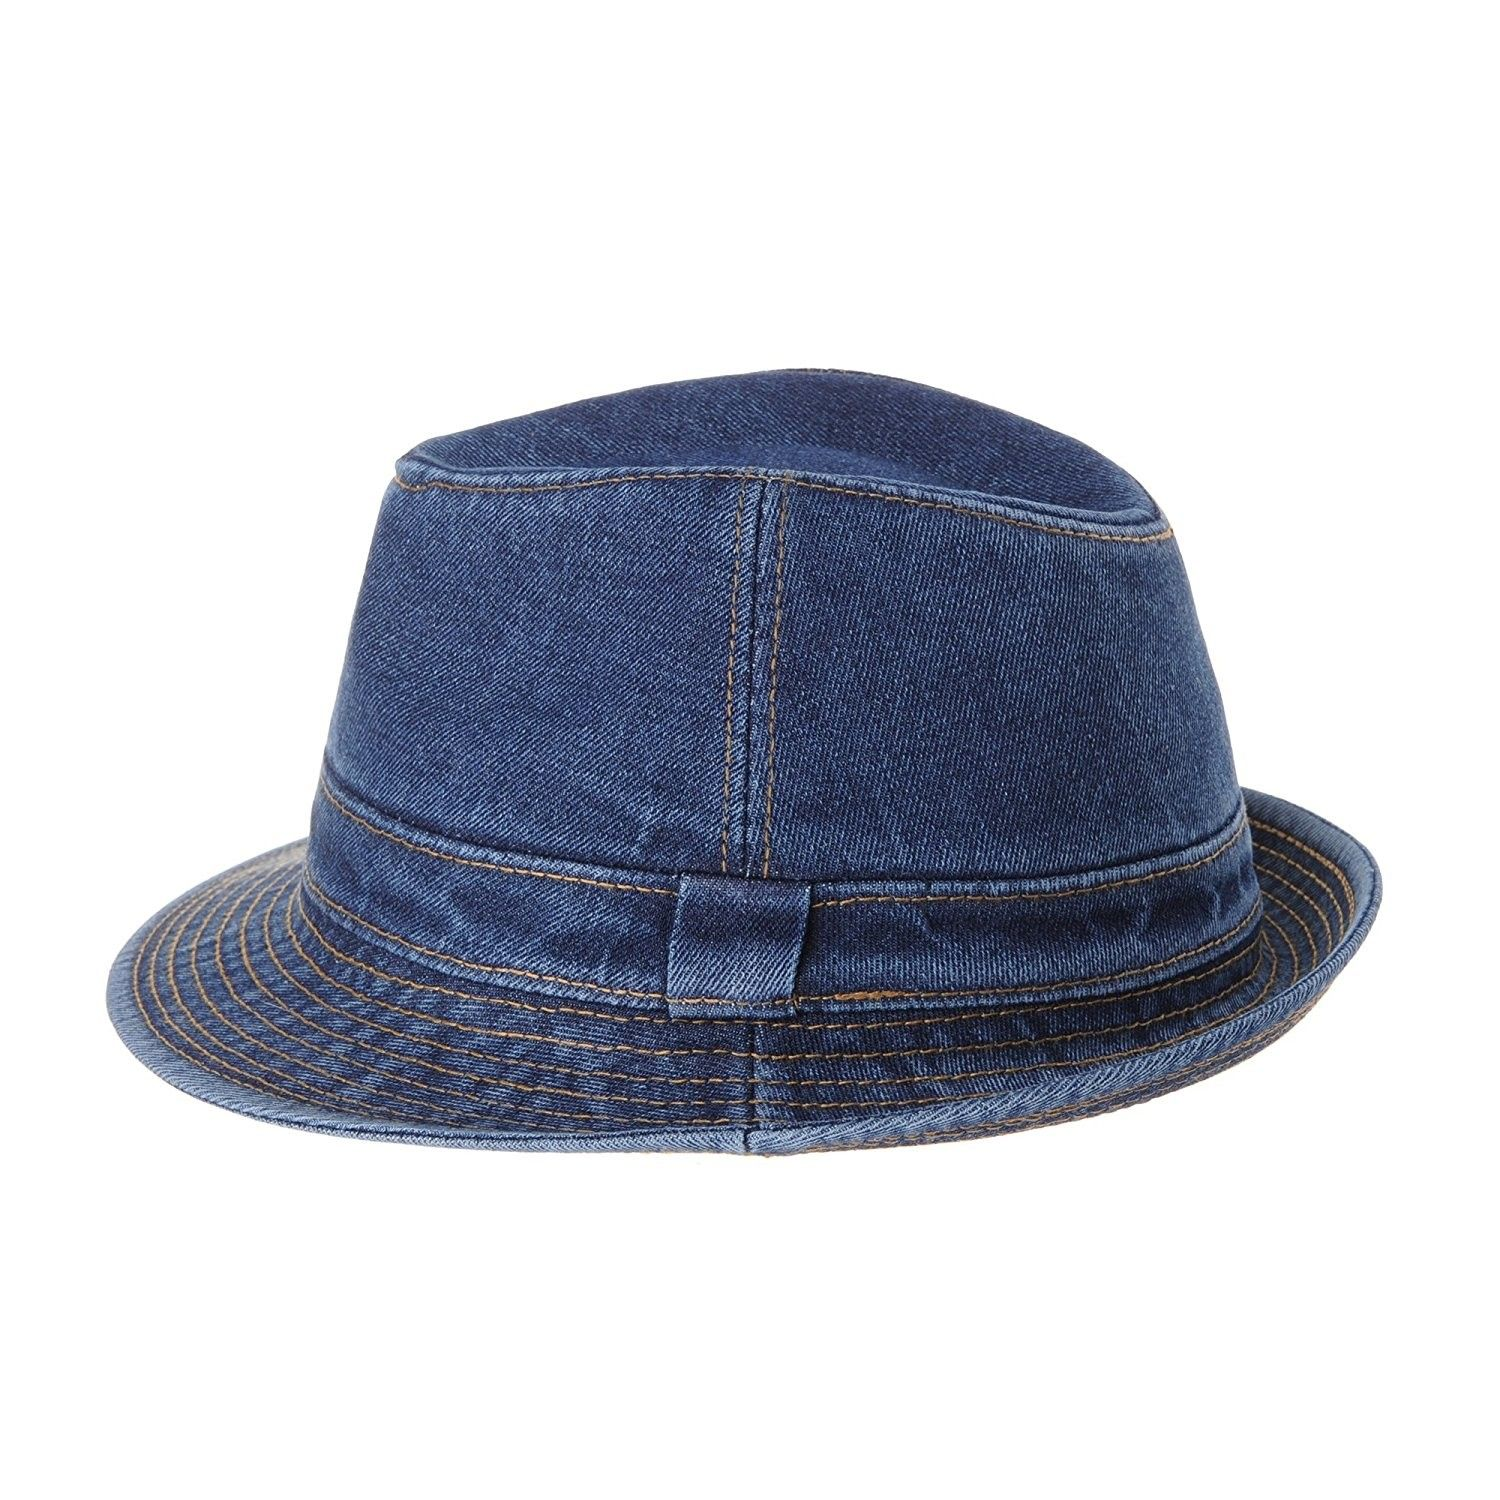 23855e53dc1fa Super Wide Brim Lifeguard Hat Lindu Straw Beach Sun Summer Surf Safari  Gardener - CF11XEMCN53